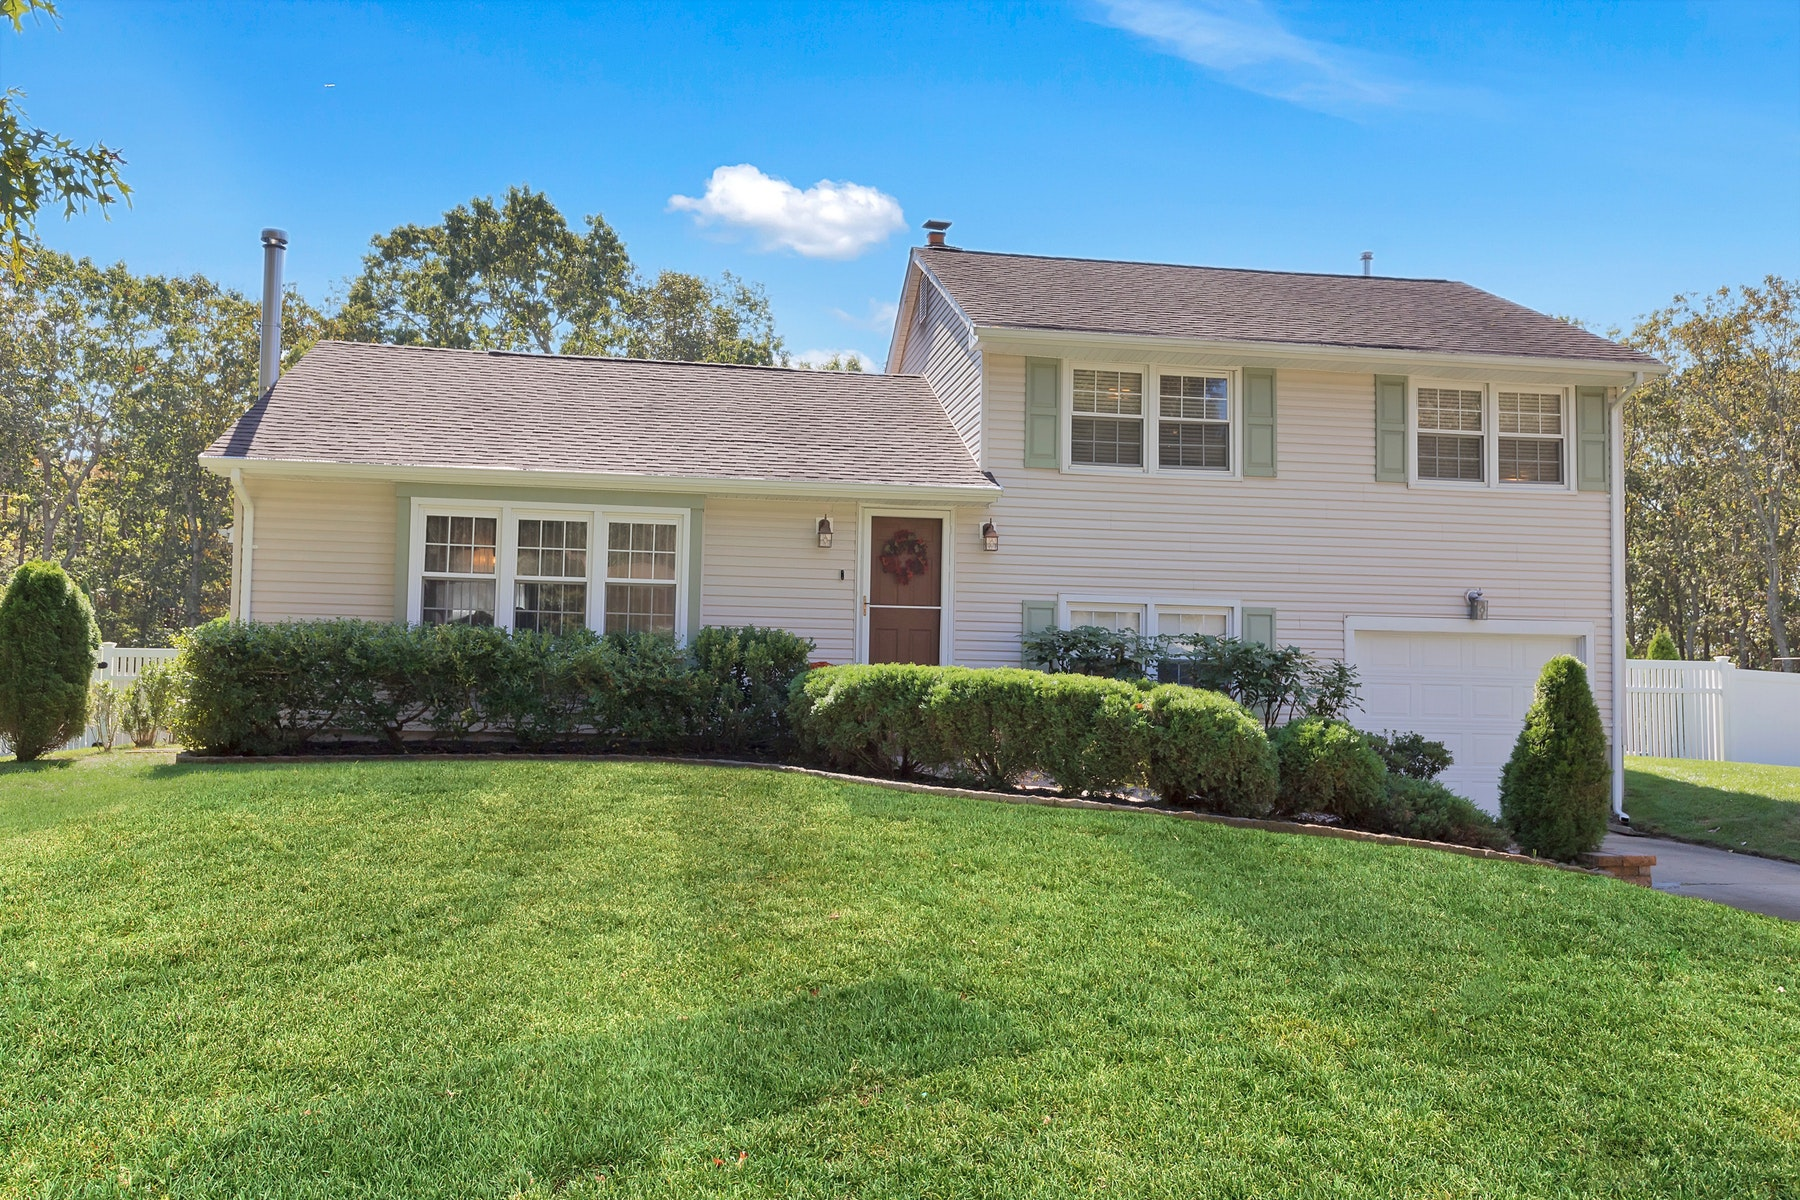 Single Family Homes for Active at Beautiful Split Level 21 Ashford Road Jackson, New Jersey 08527 United States